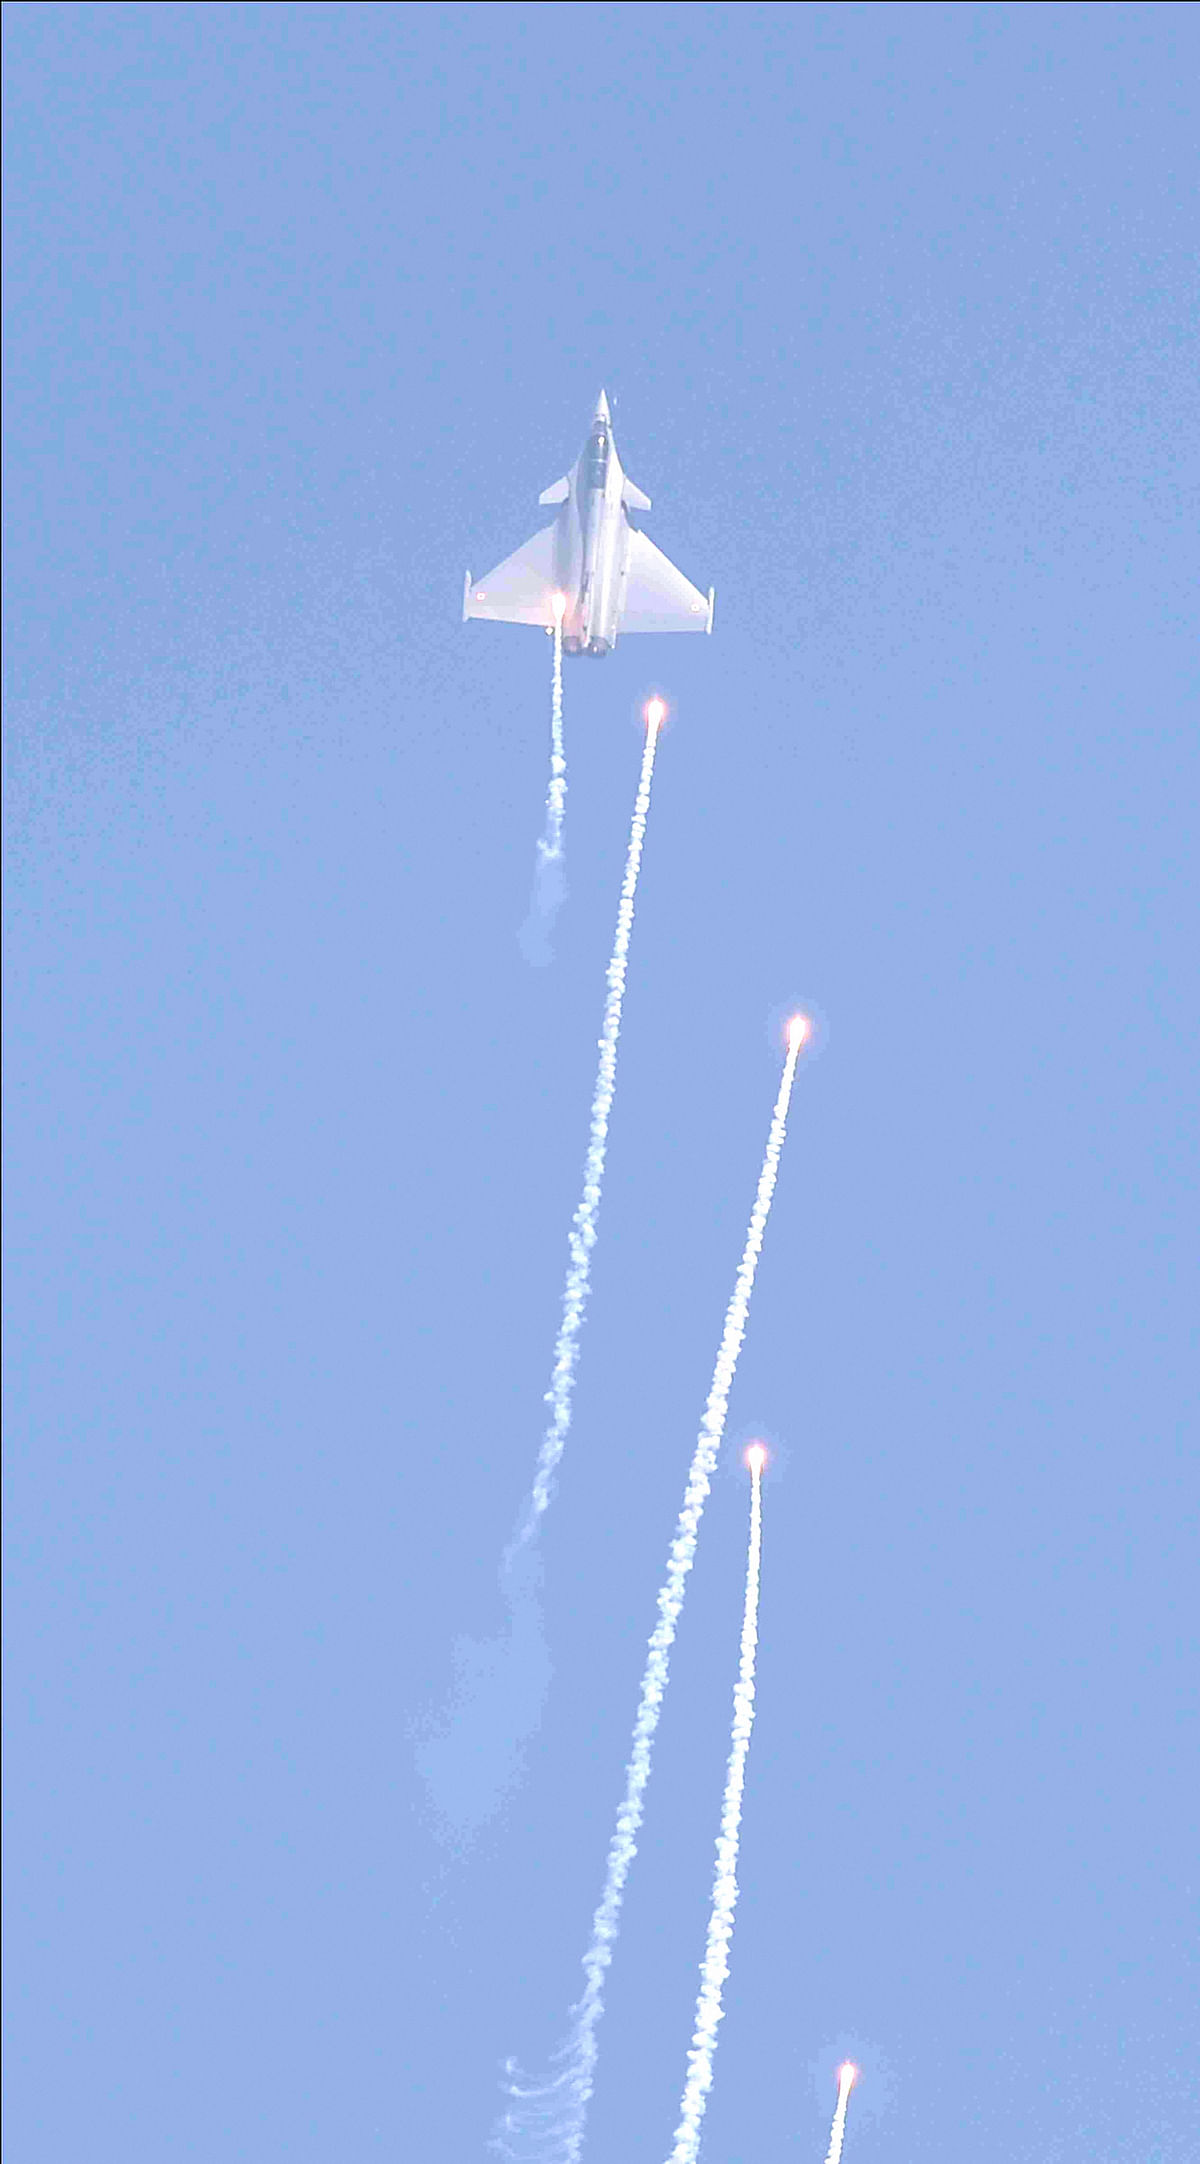 Rafale fighter aircraft of the Indian Air Force fires flares during the 88th Indian Air Force Day celebrations, at Hindon Airbase in Ghaziabad.